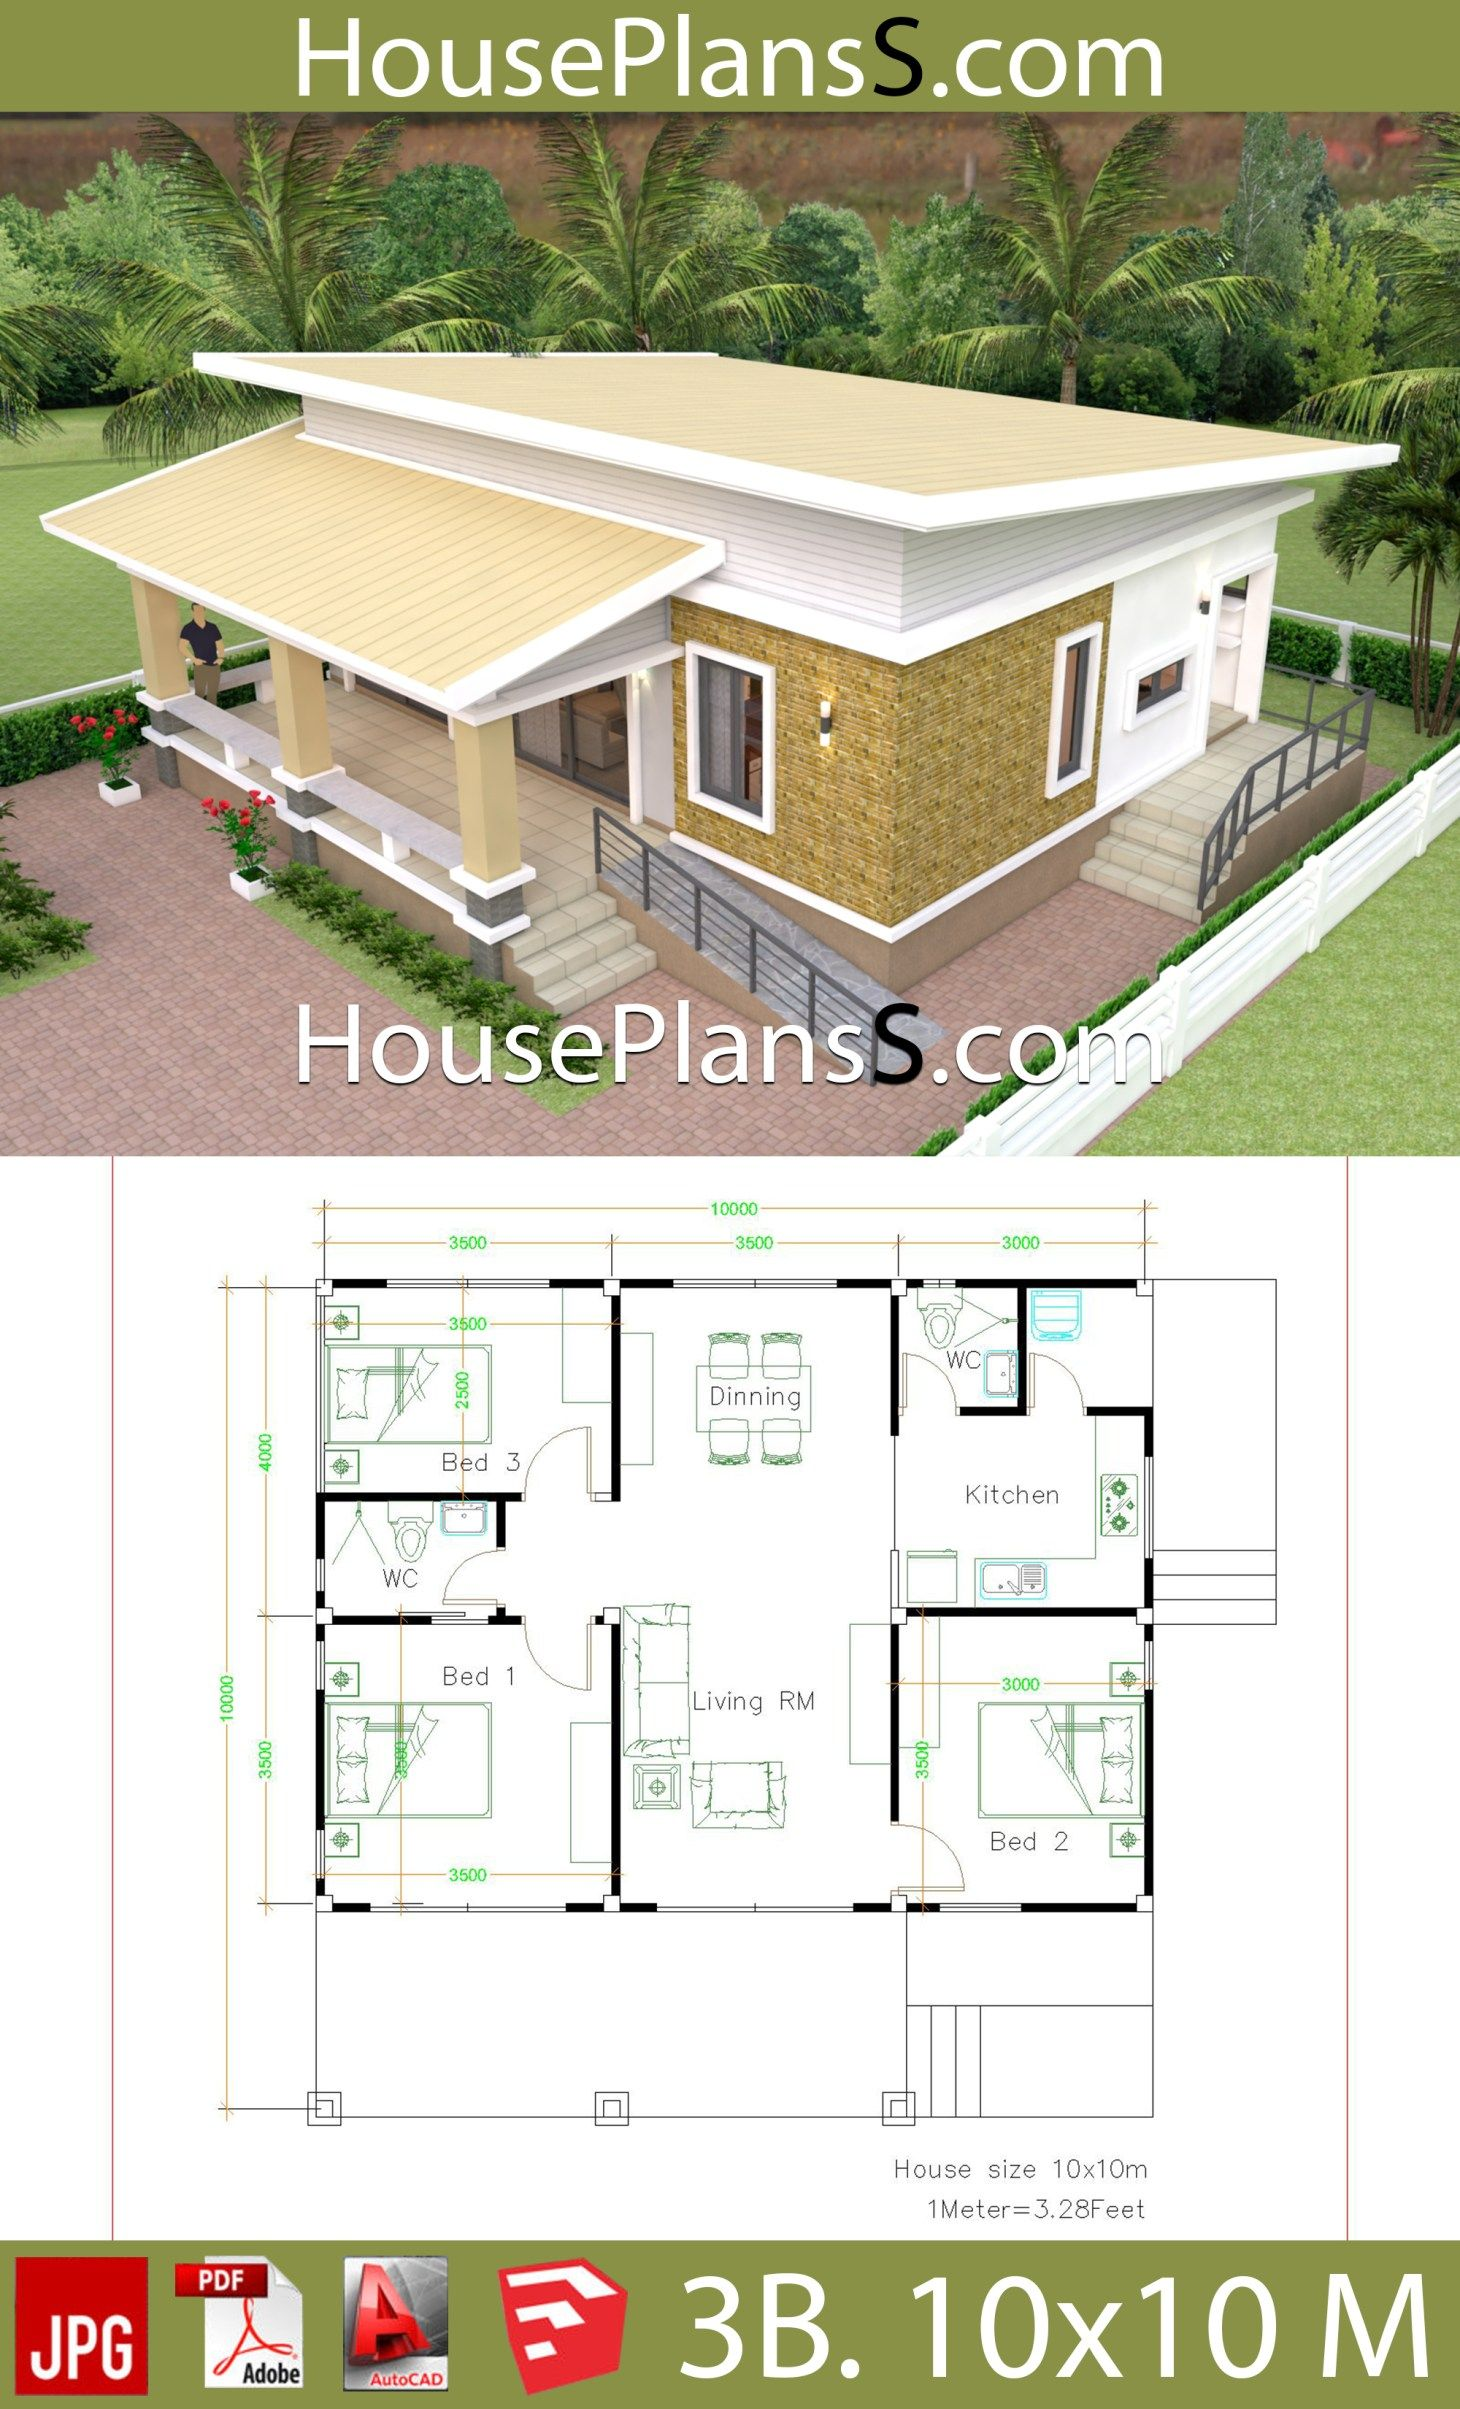 Find Your House Plans Below House Plans 3d Small House Design Plans House Construction Plan Affordable House Plans